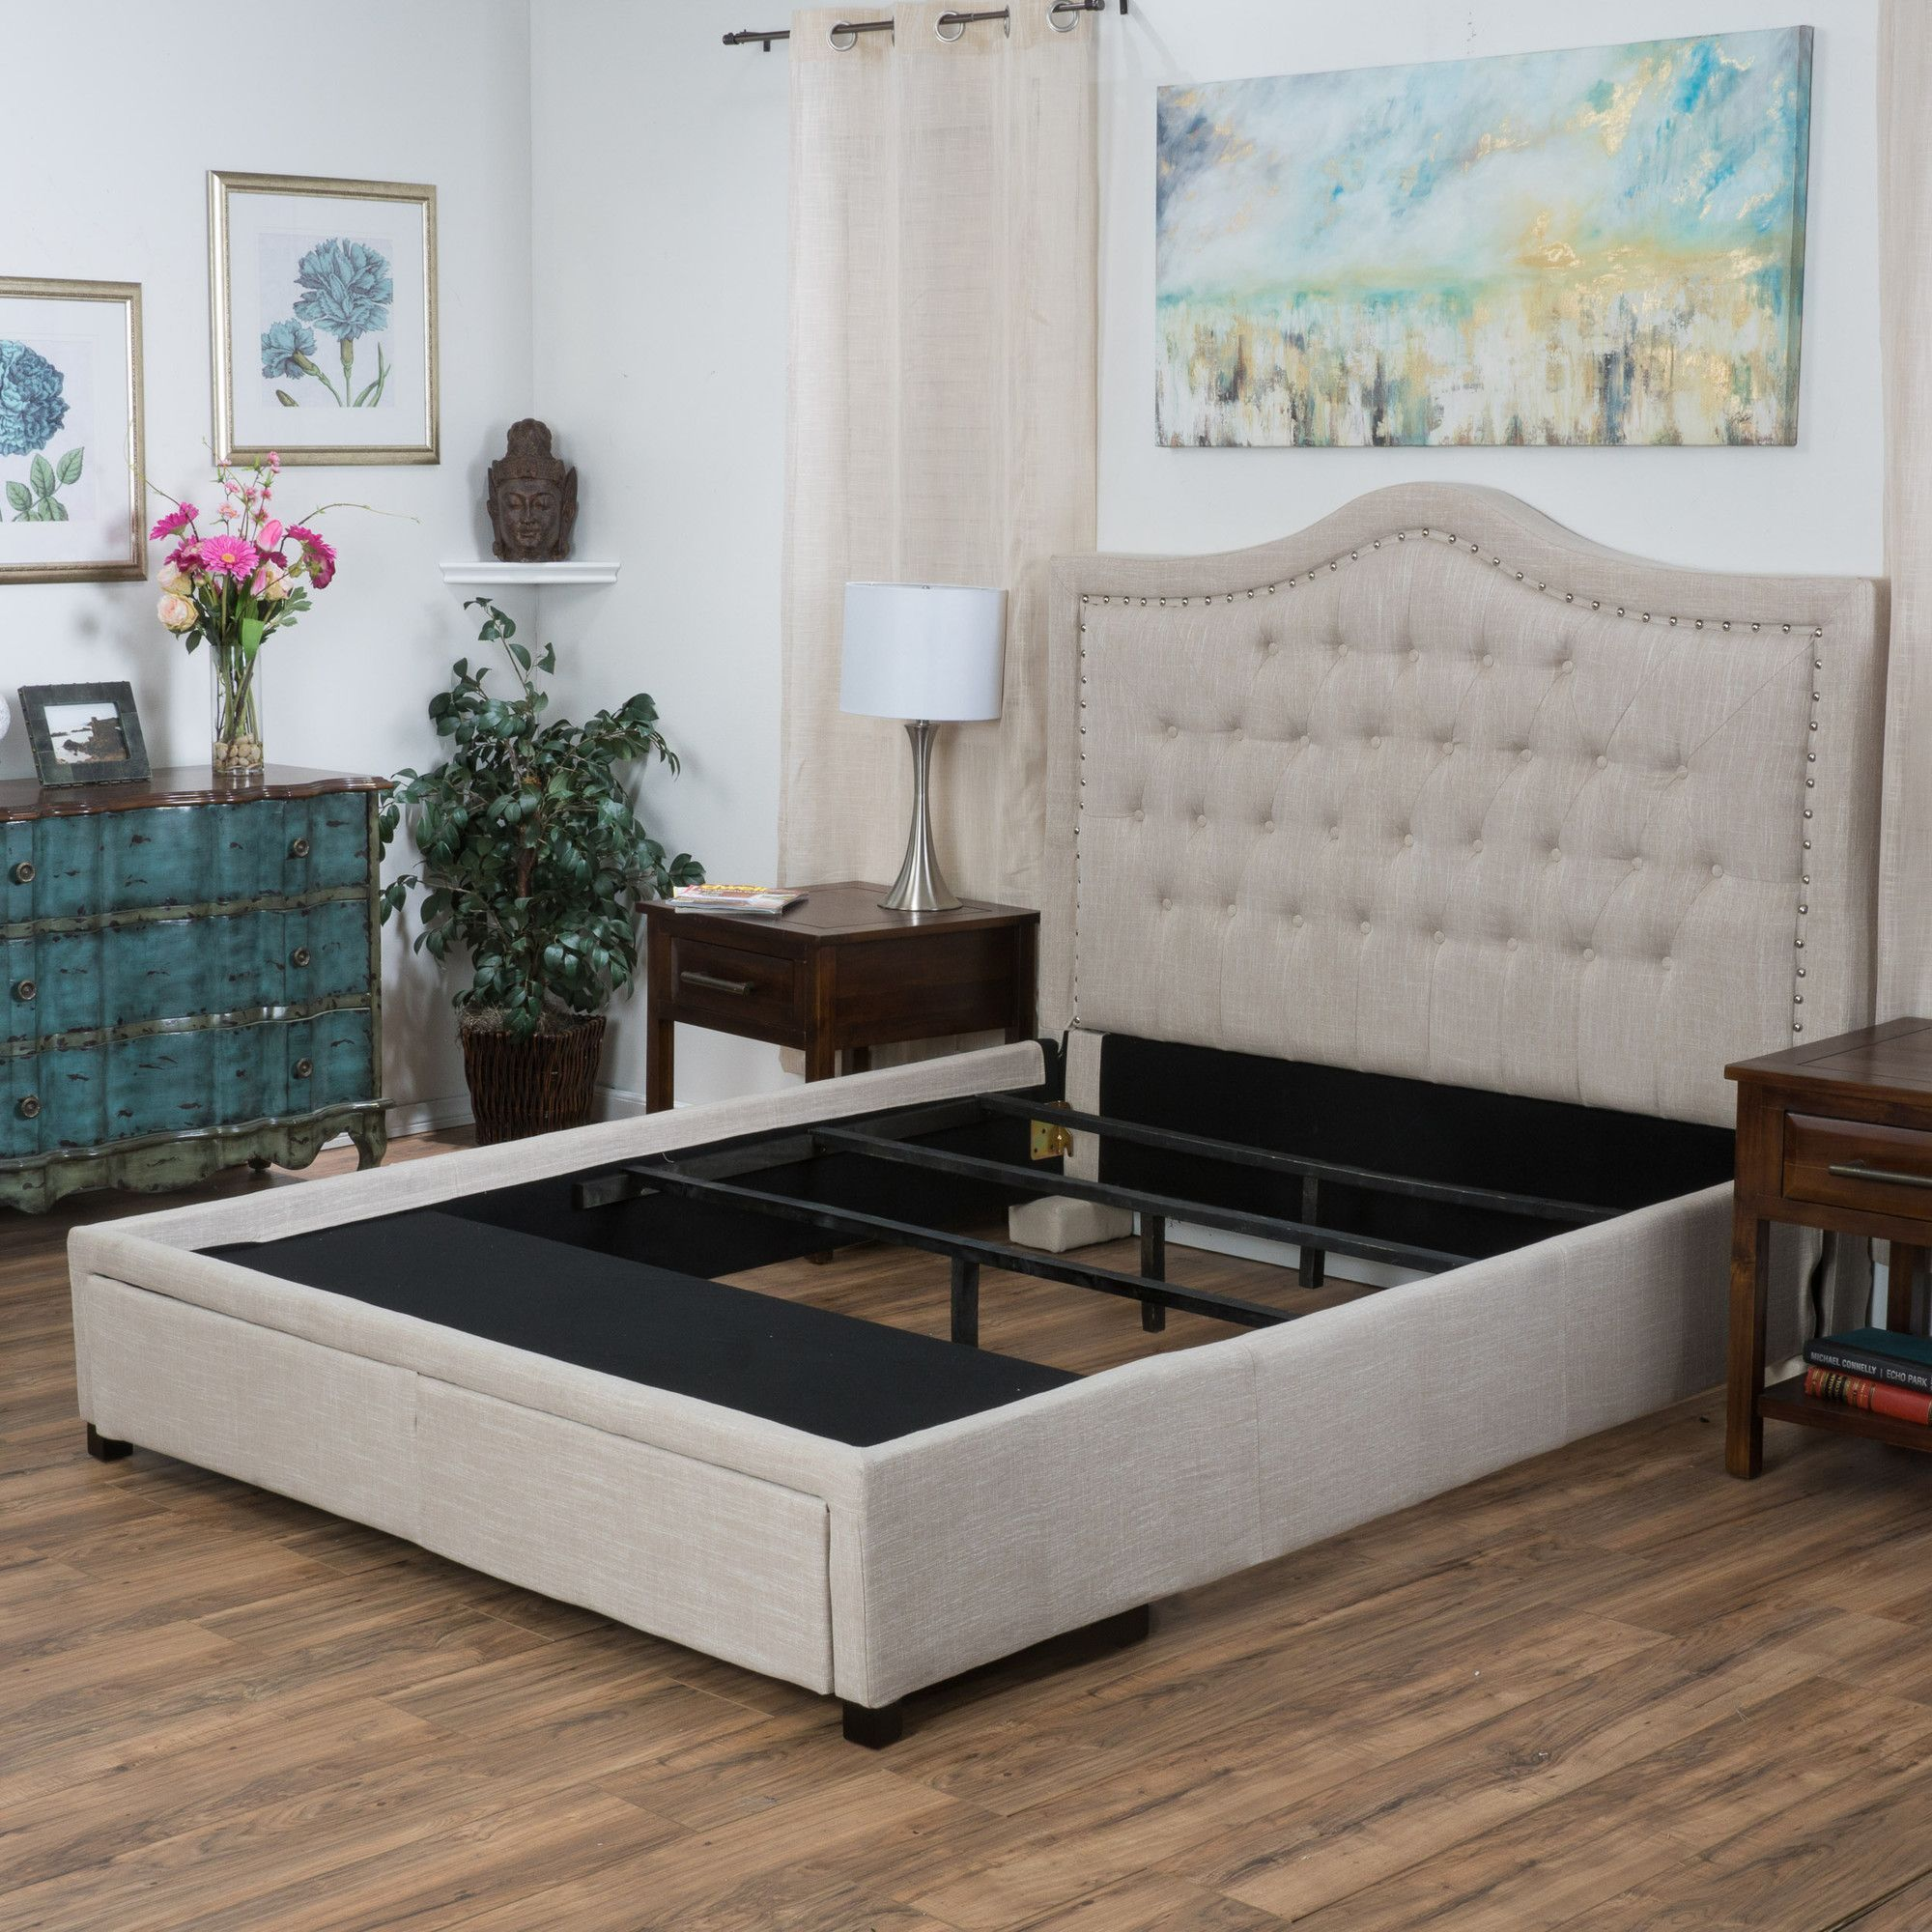 Homemade twin loft bed  Michelle Storage Panel Bed  Products  Pinterest  Products